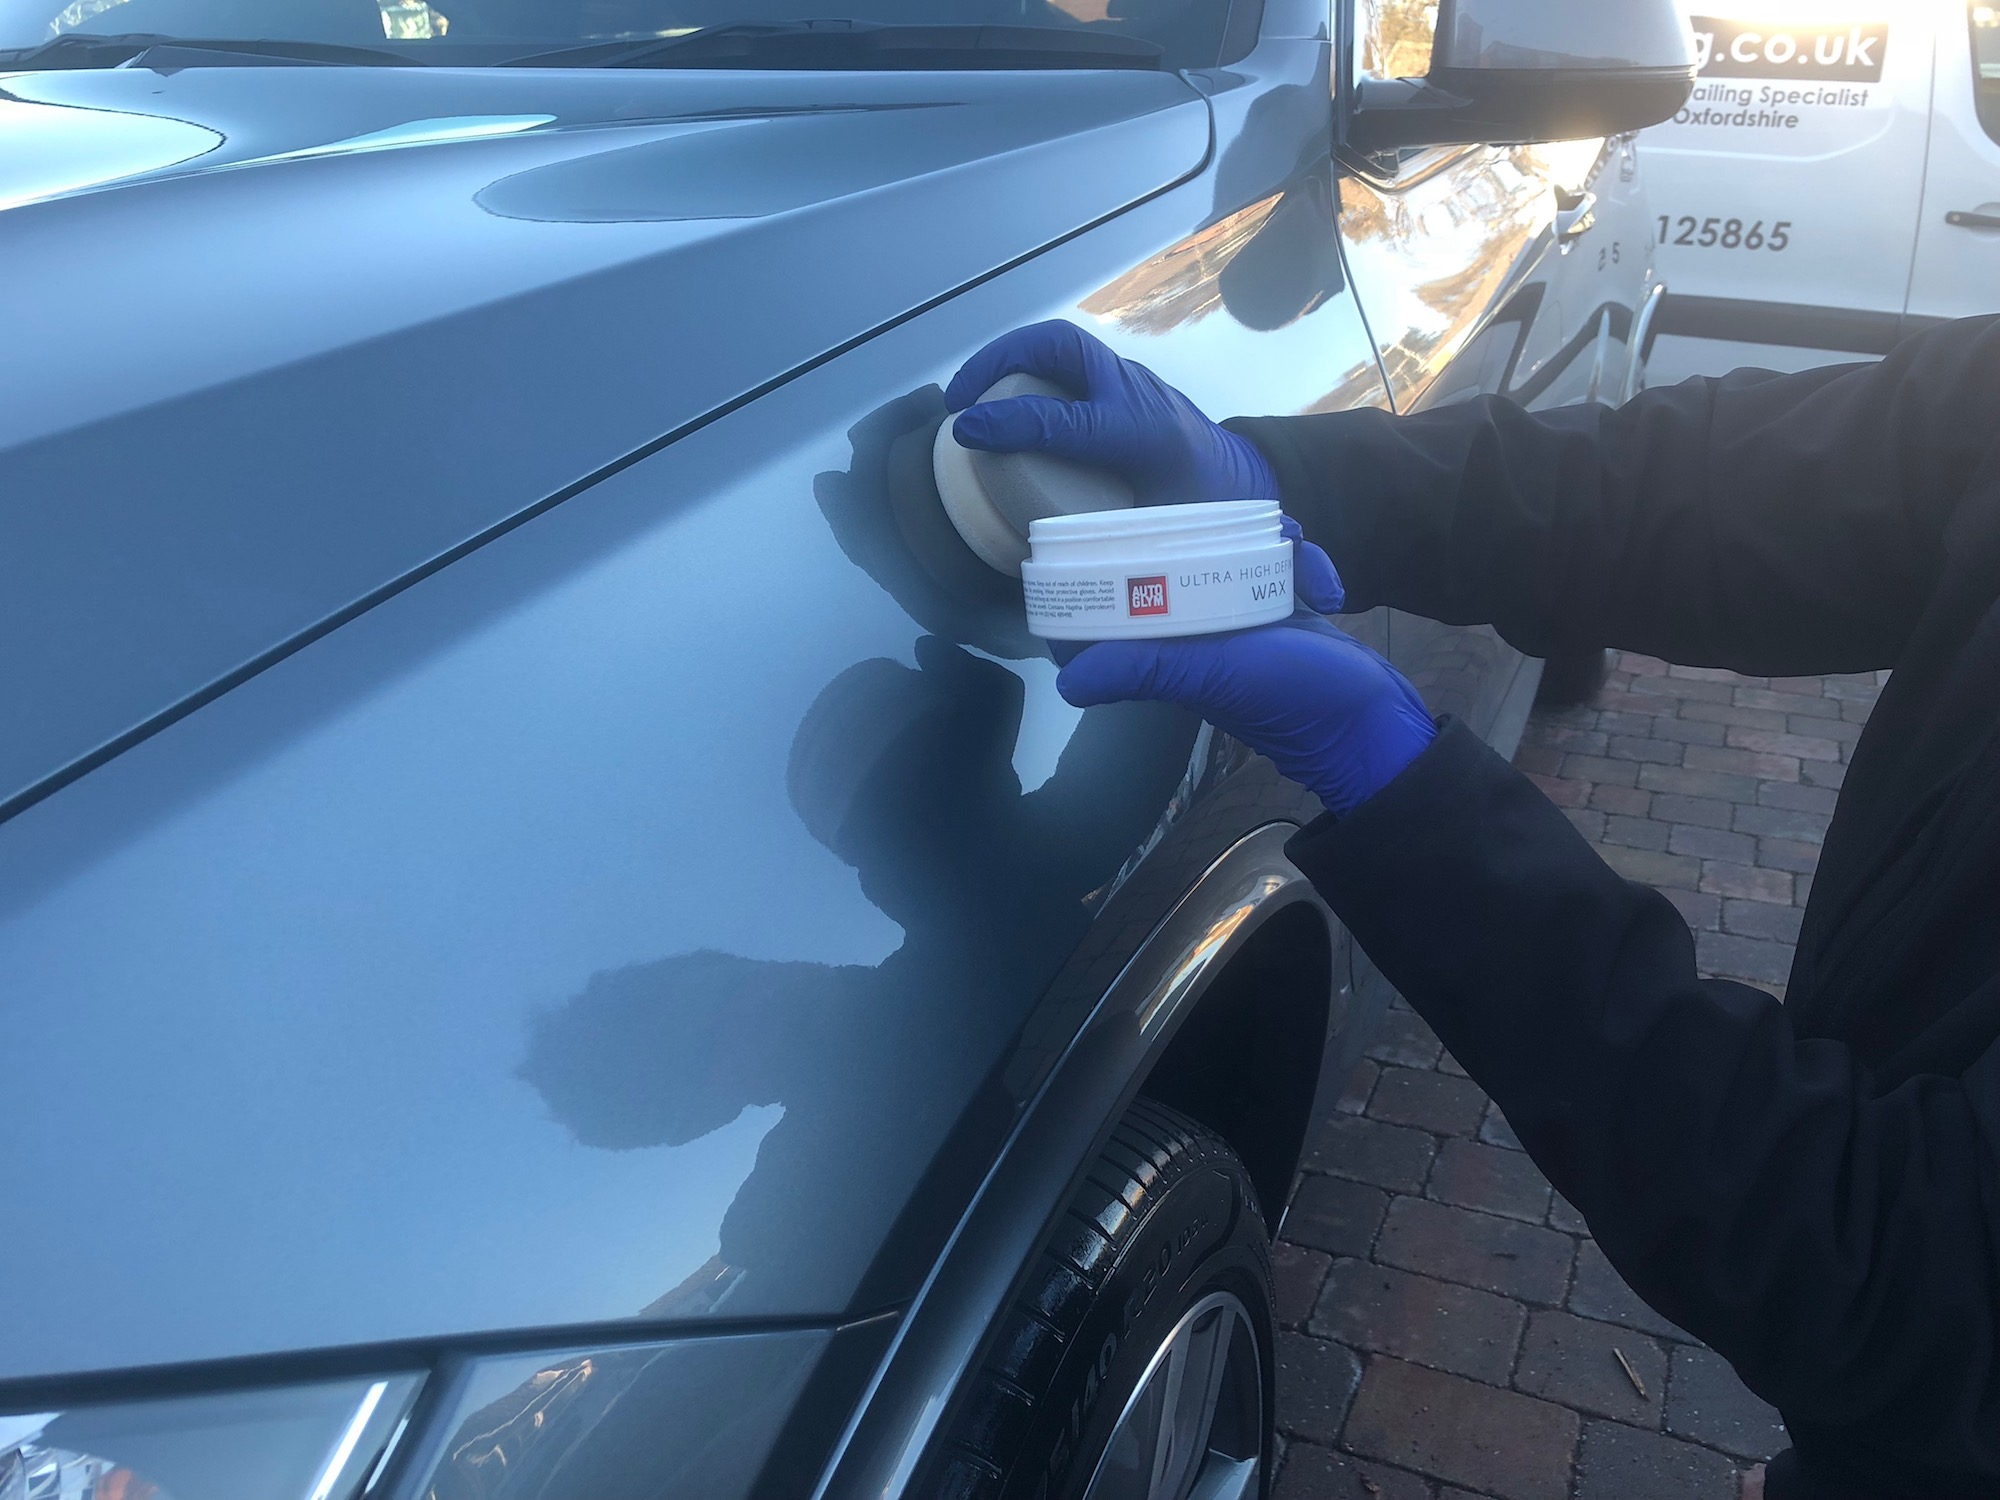 High definition wax for your vehicle. A specialist service from mmvaleting, car detailers and car valeting in Oxfordshire and Buckinghamshire.